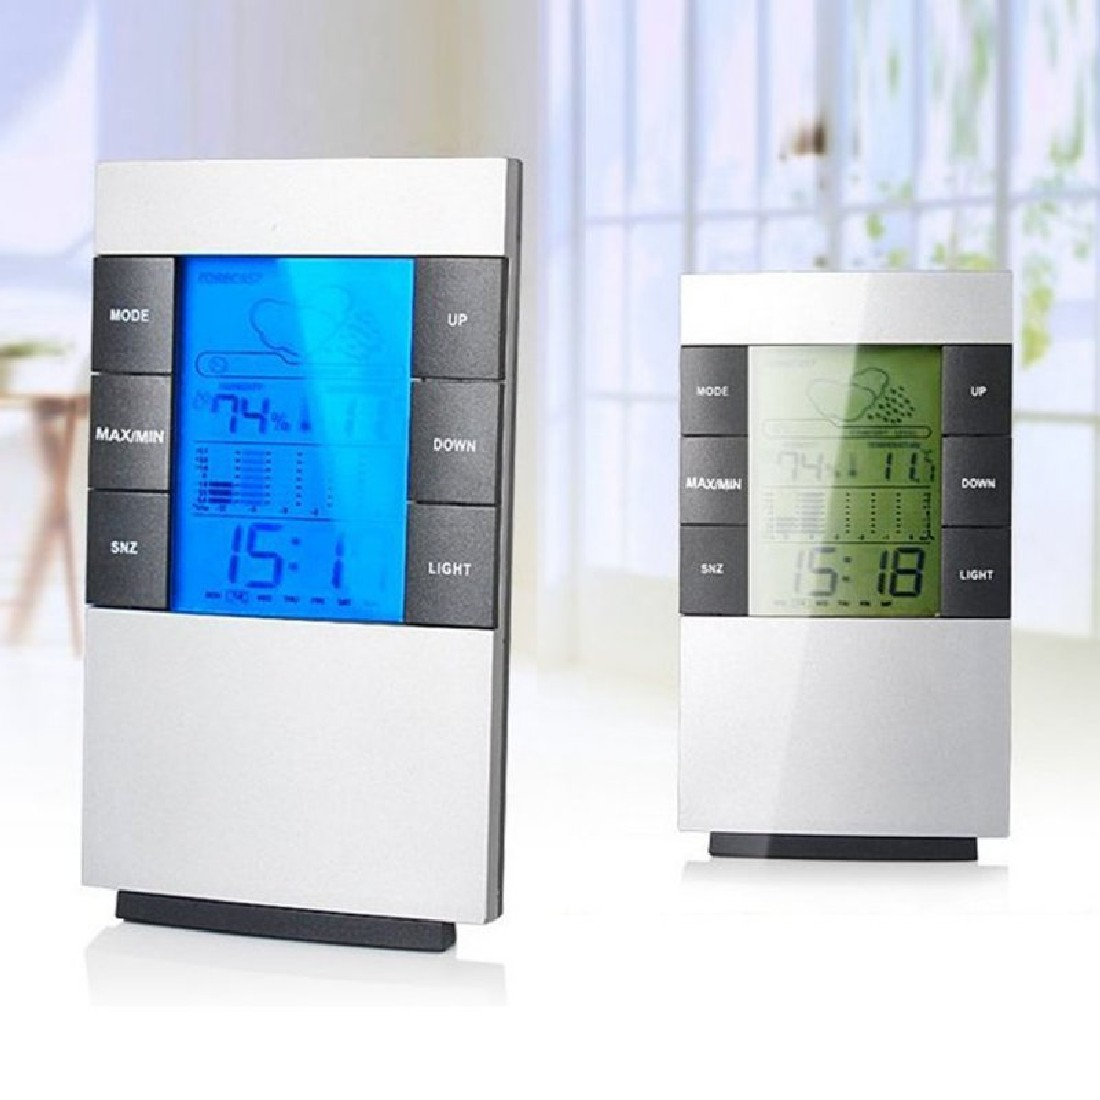 Multifunctional Home Humidity Thermometer Clock Measurement Device LCD Digital Hygrometer Temperature Meter Weather Station multifunctional home humidity thermometer lcd digital hygrometer temperature meter clock measurement device